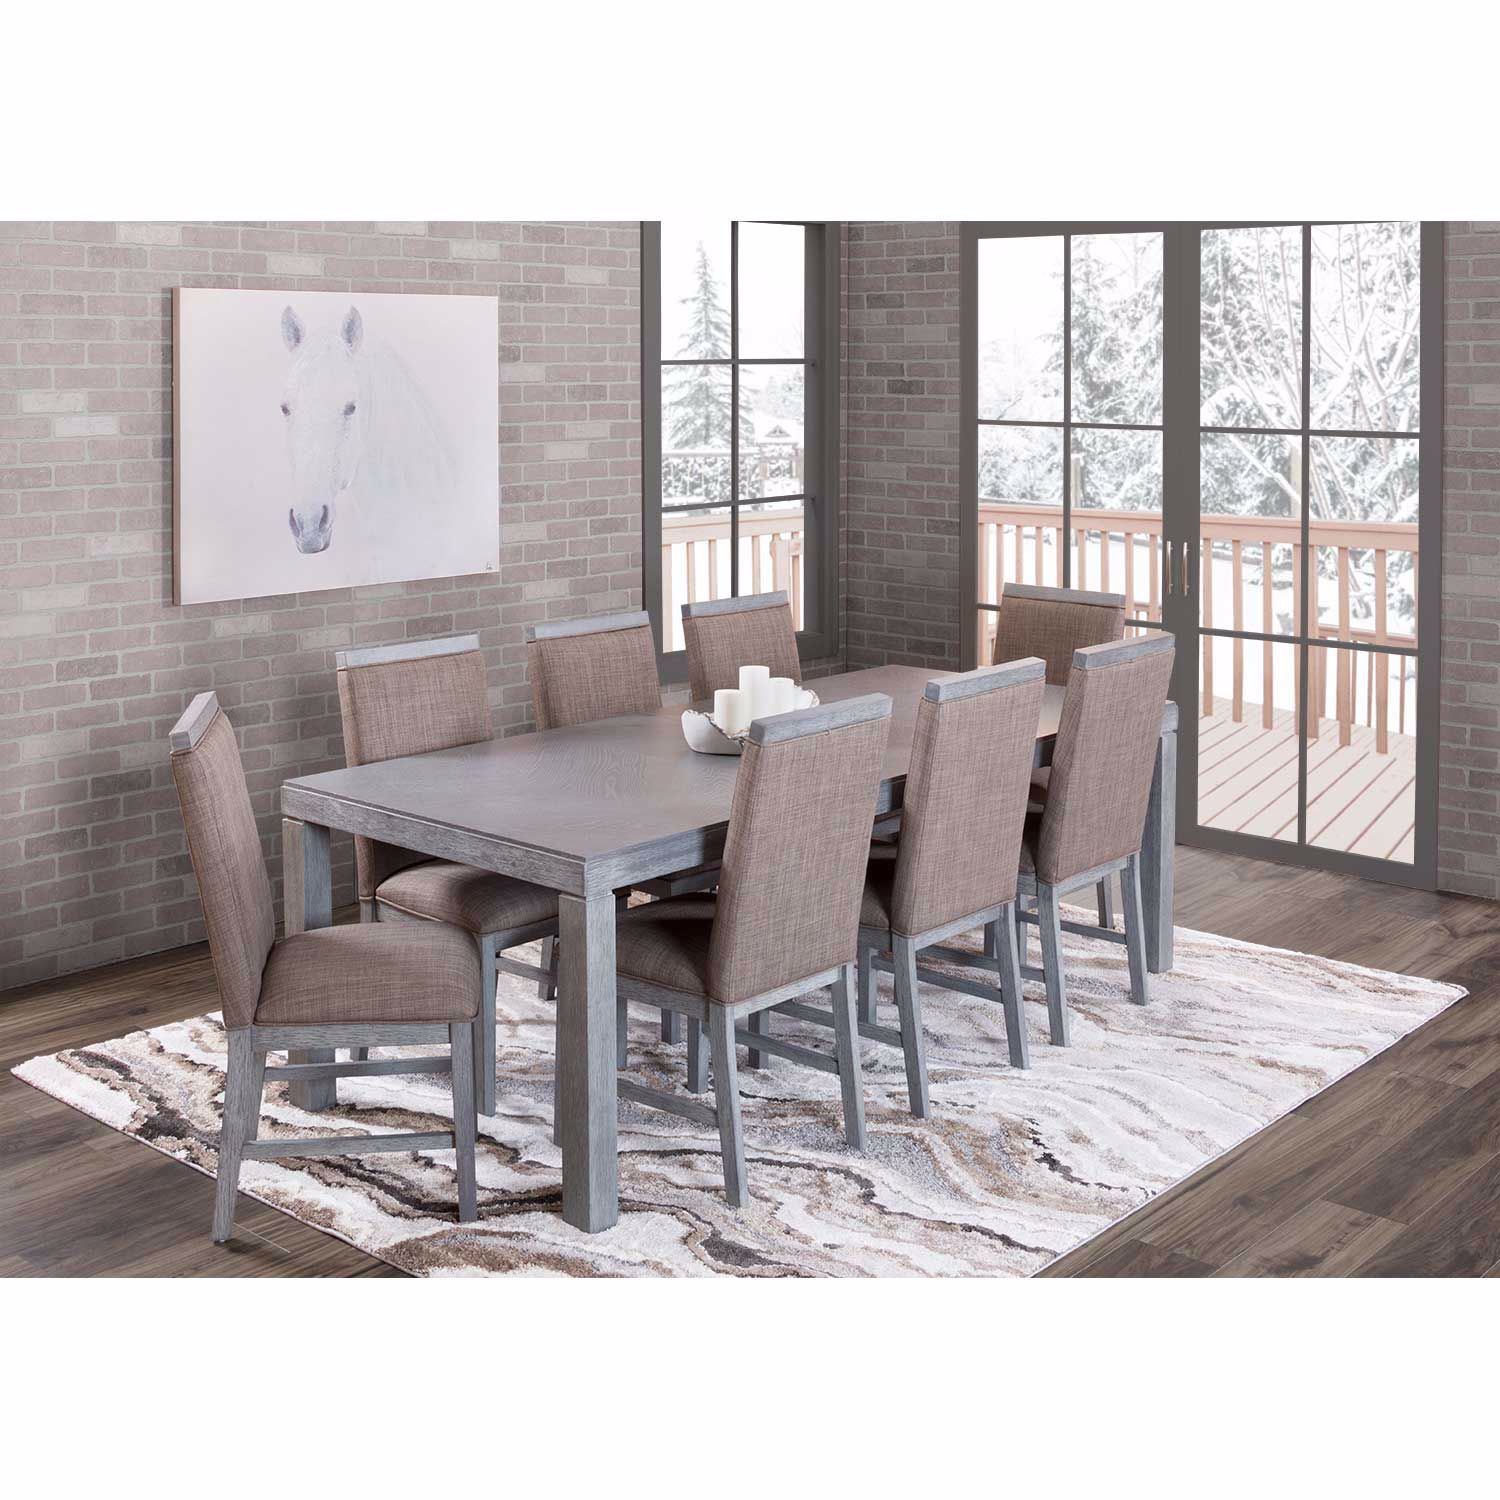 Picture of Parson 9 Piece Dining Set